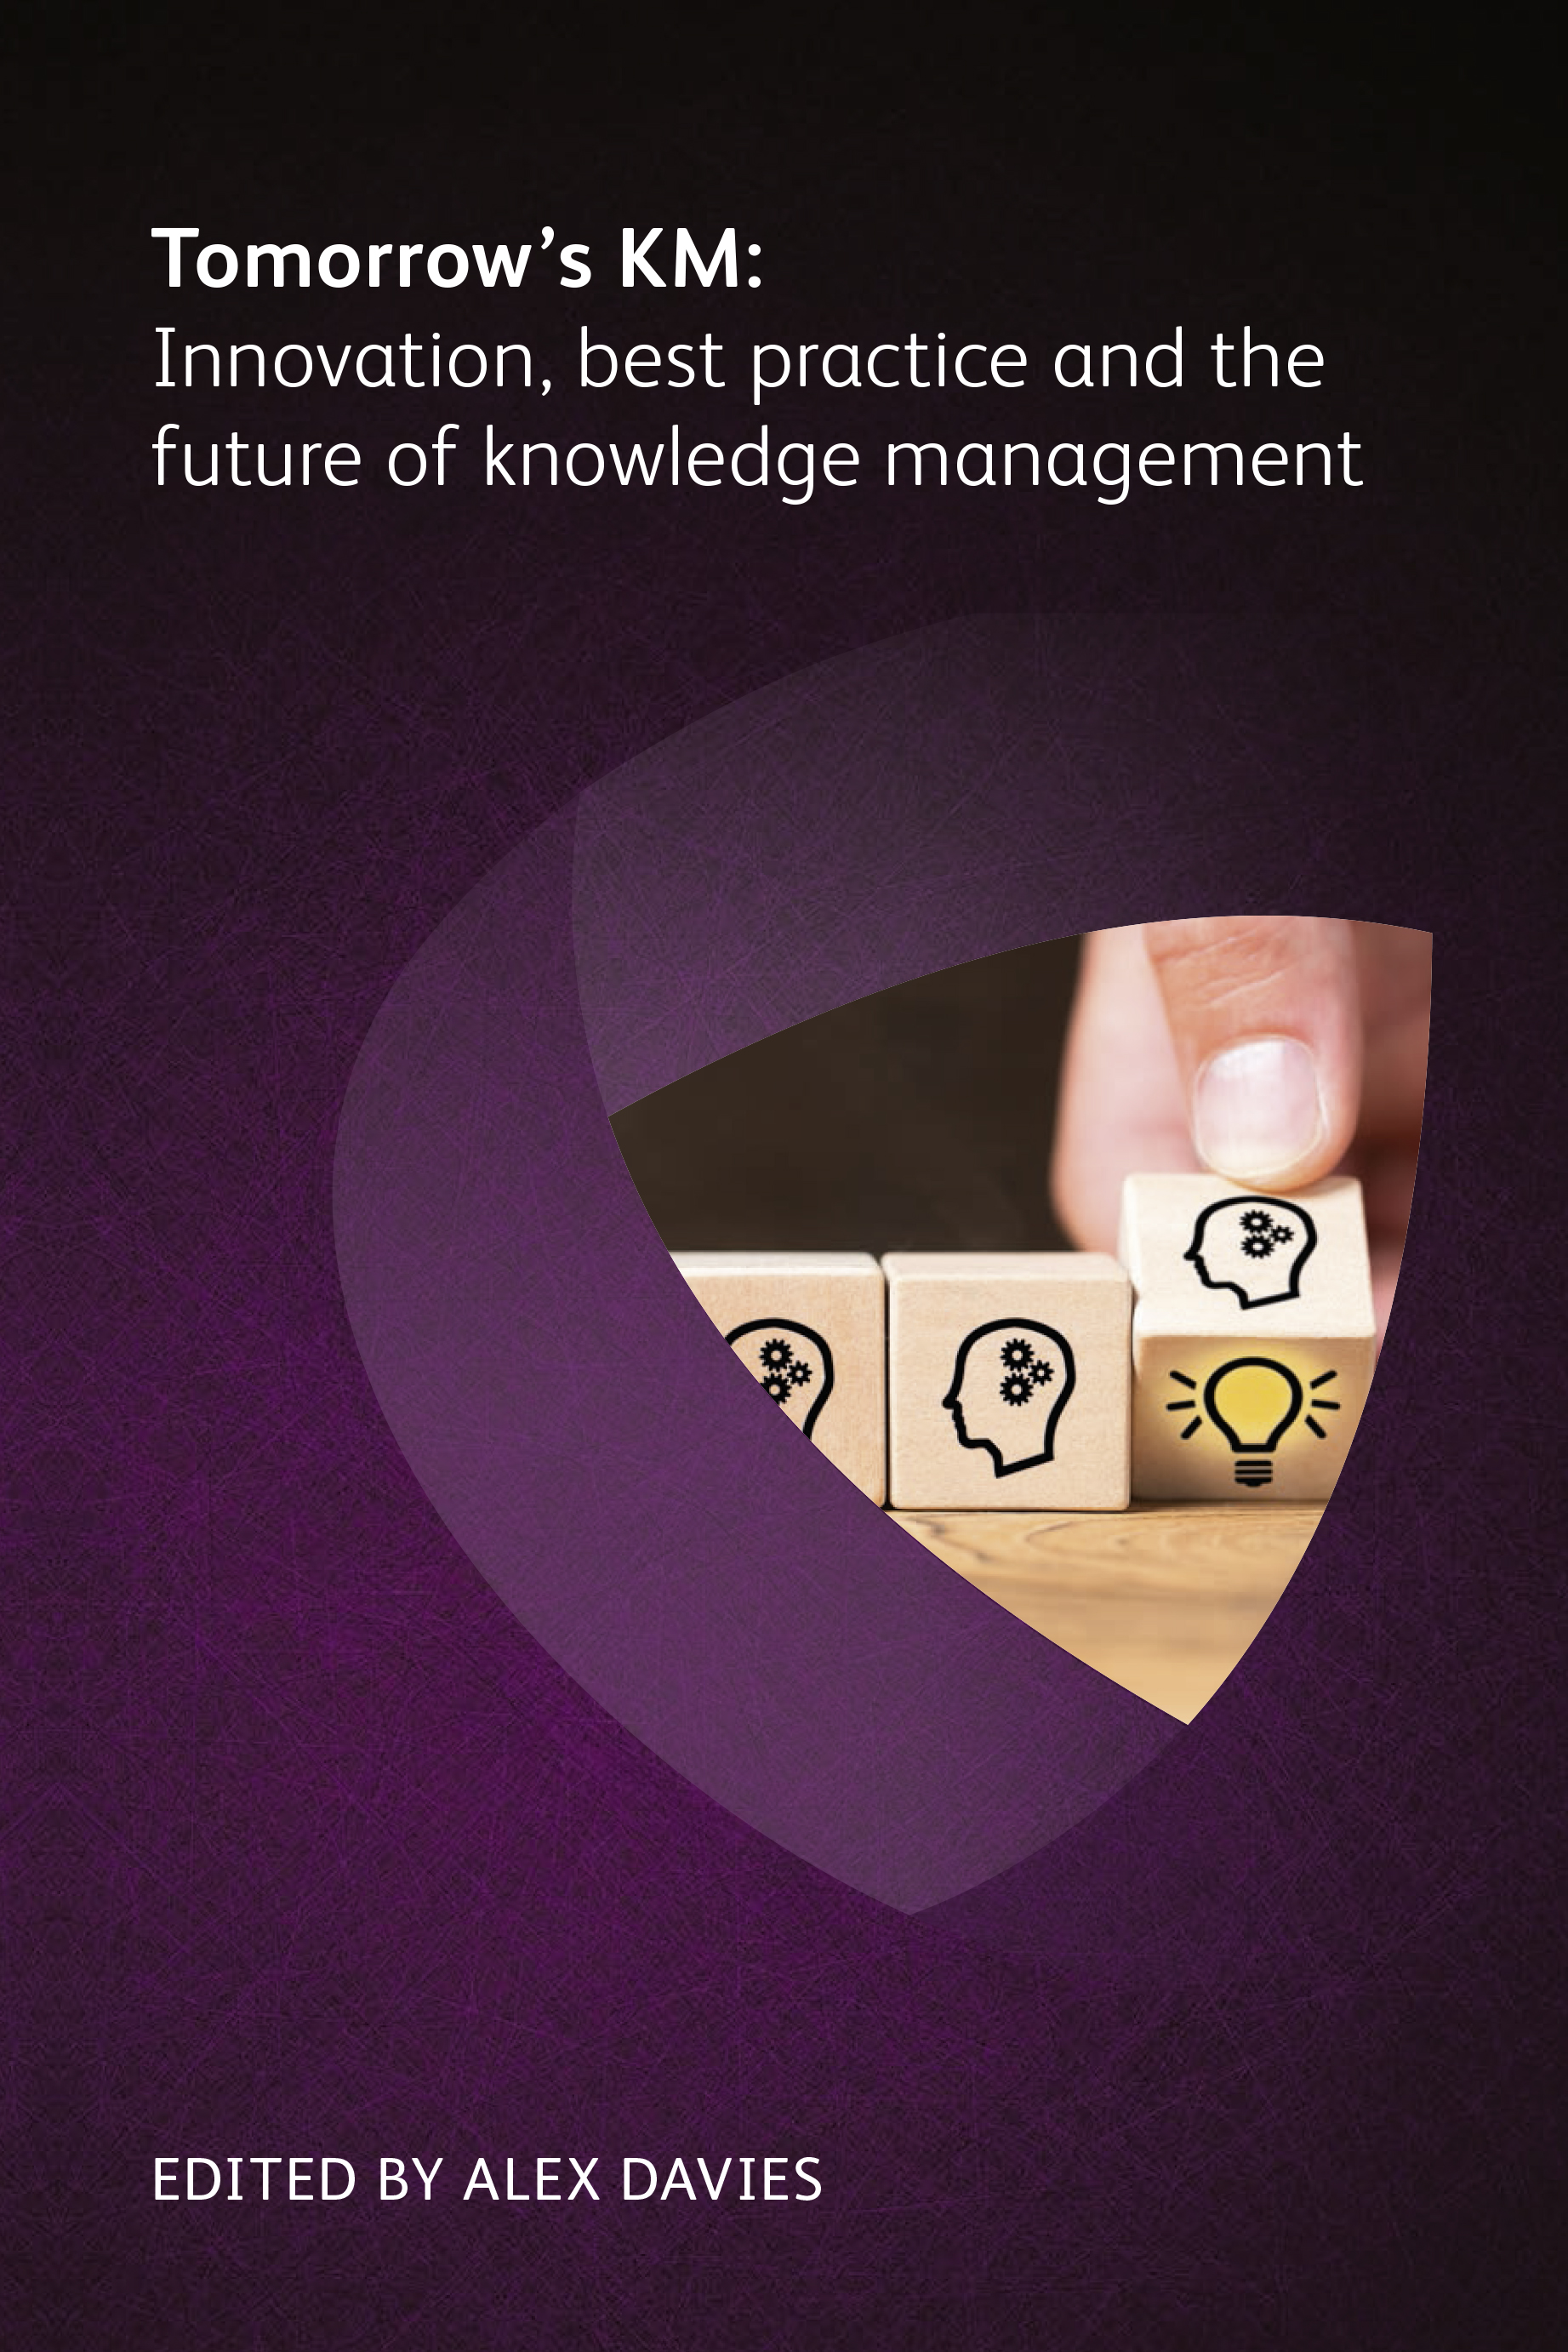 Image for Tomorrow's KM: Innovation, best practice and the future of knowledge management